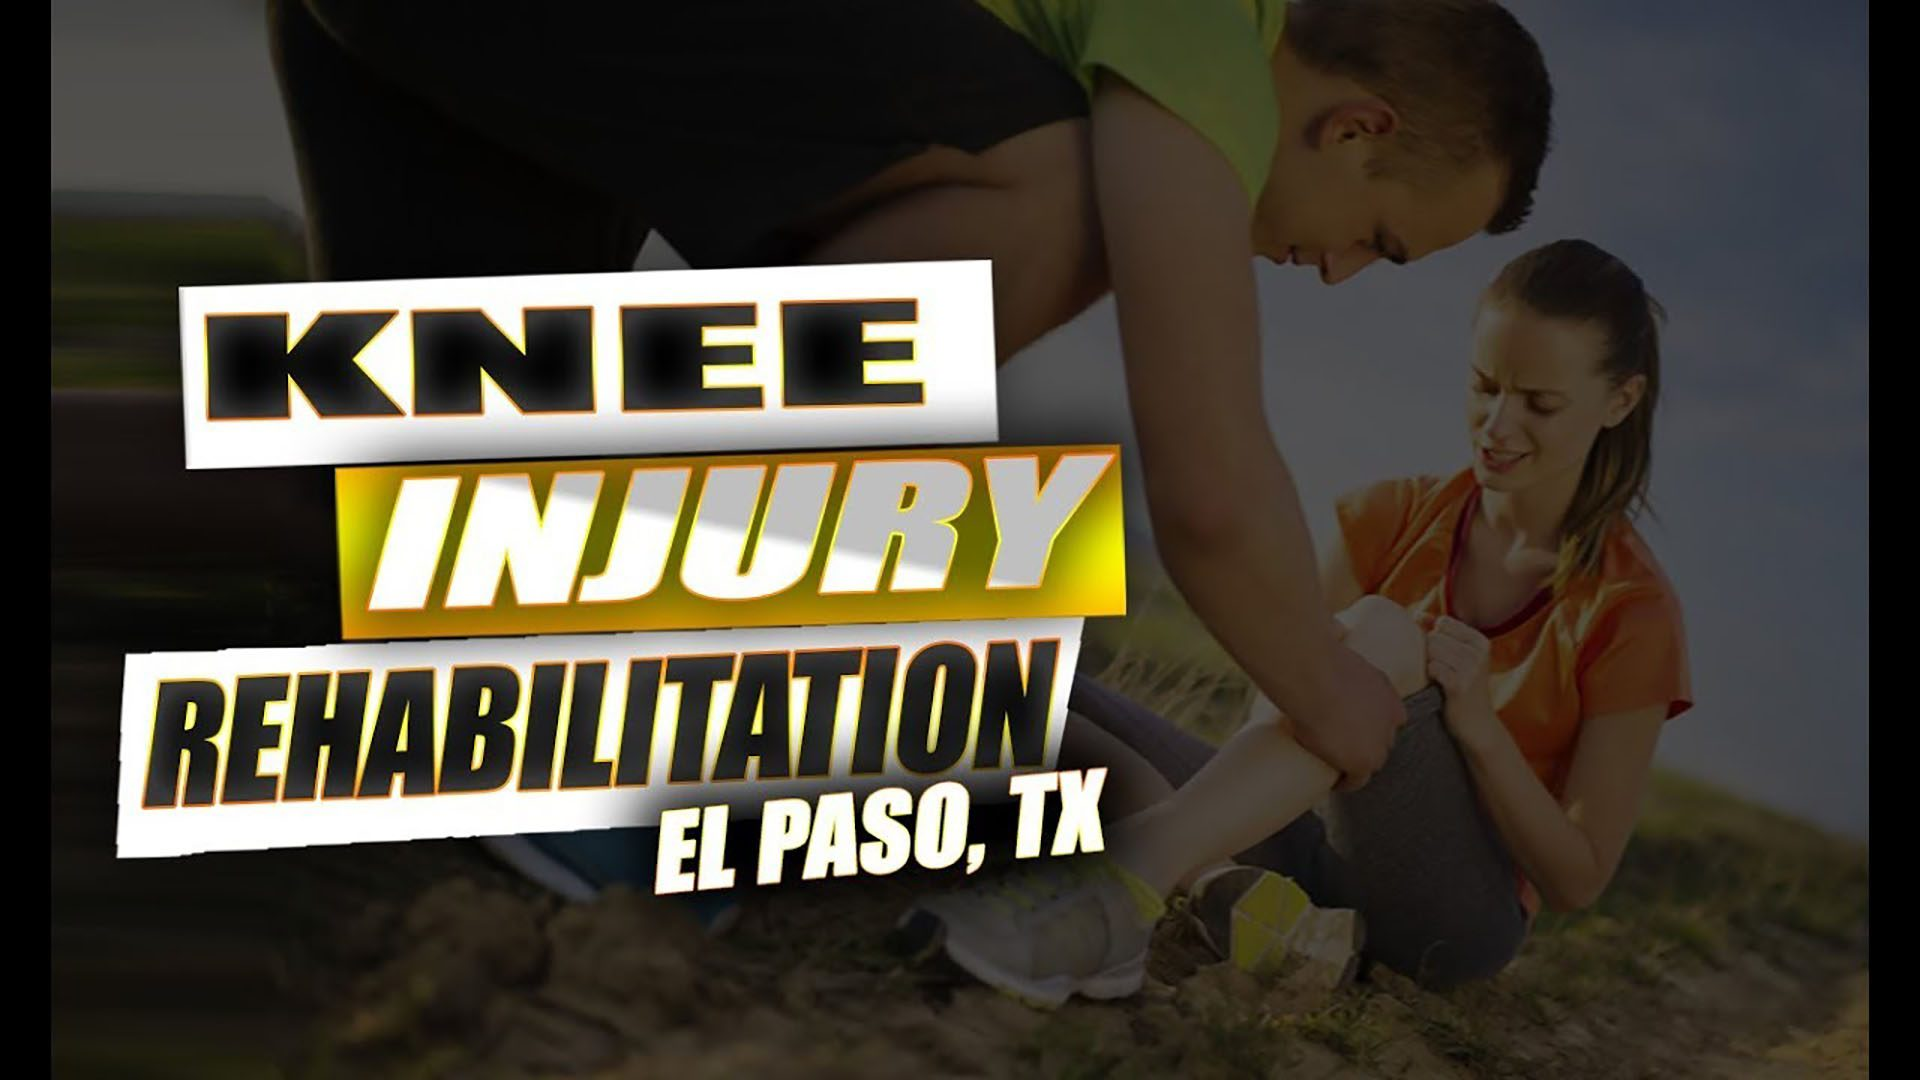 knee injury chiropractic care, el paso tx.